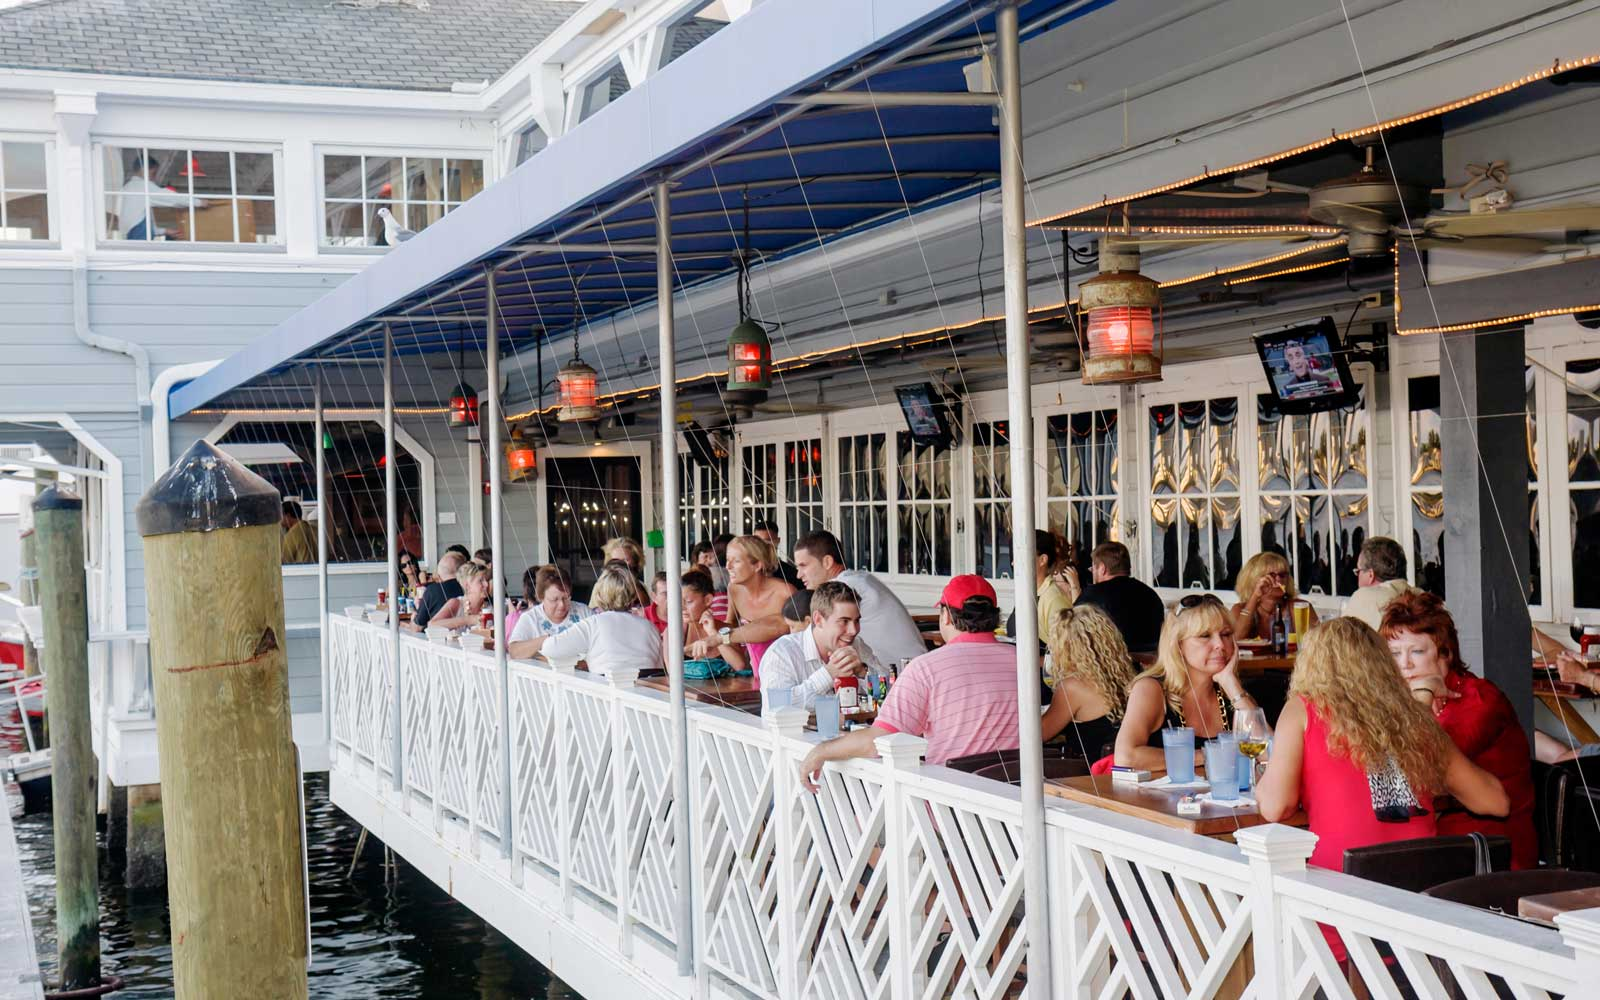 15th Street Fisheries in Fort Lauderdale, Florida